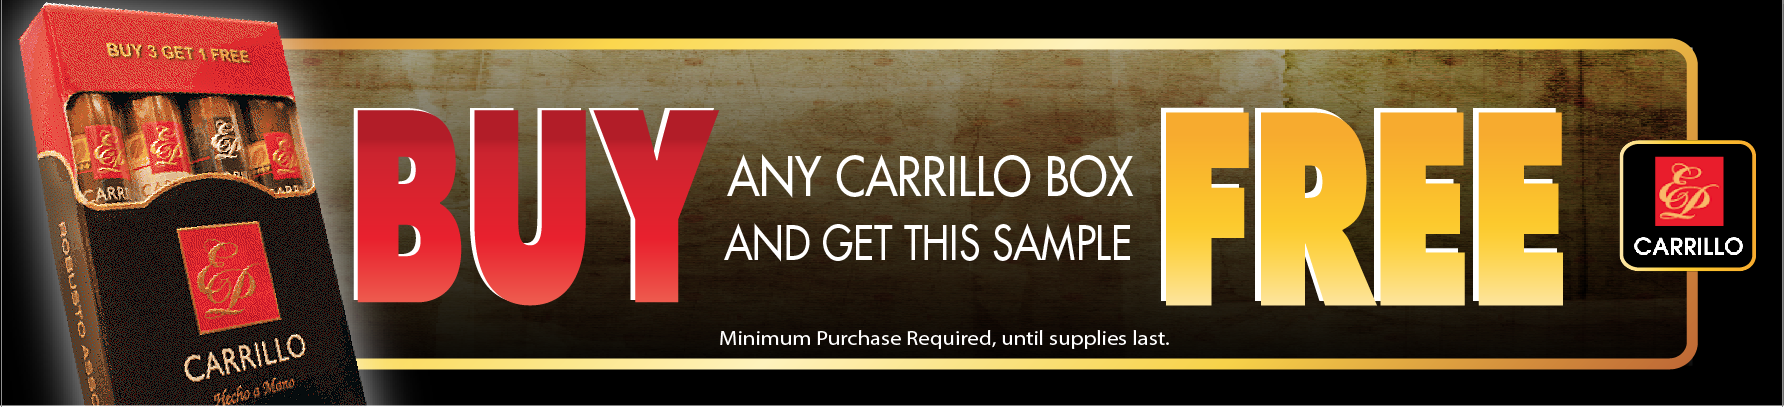 epc carrillo free sampler